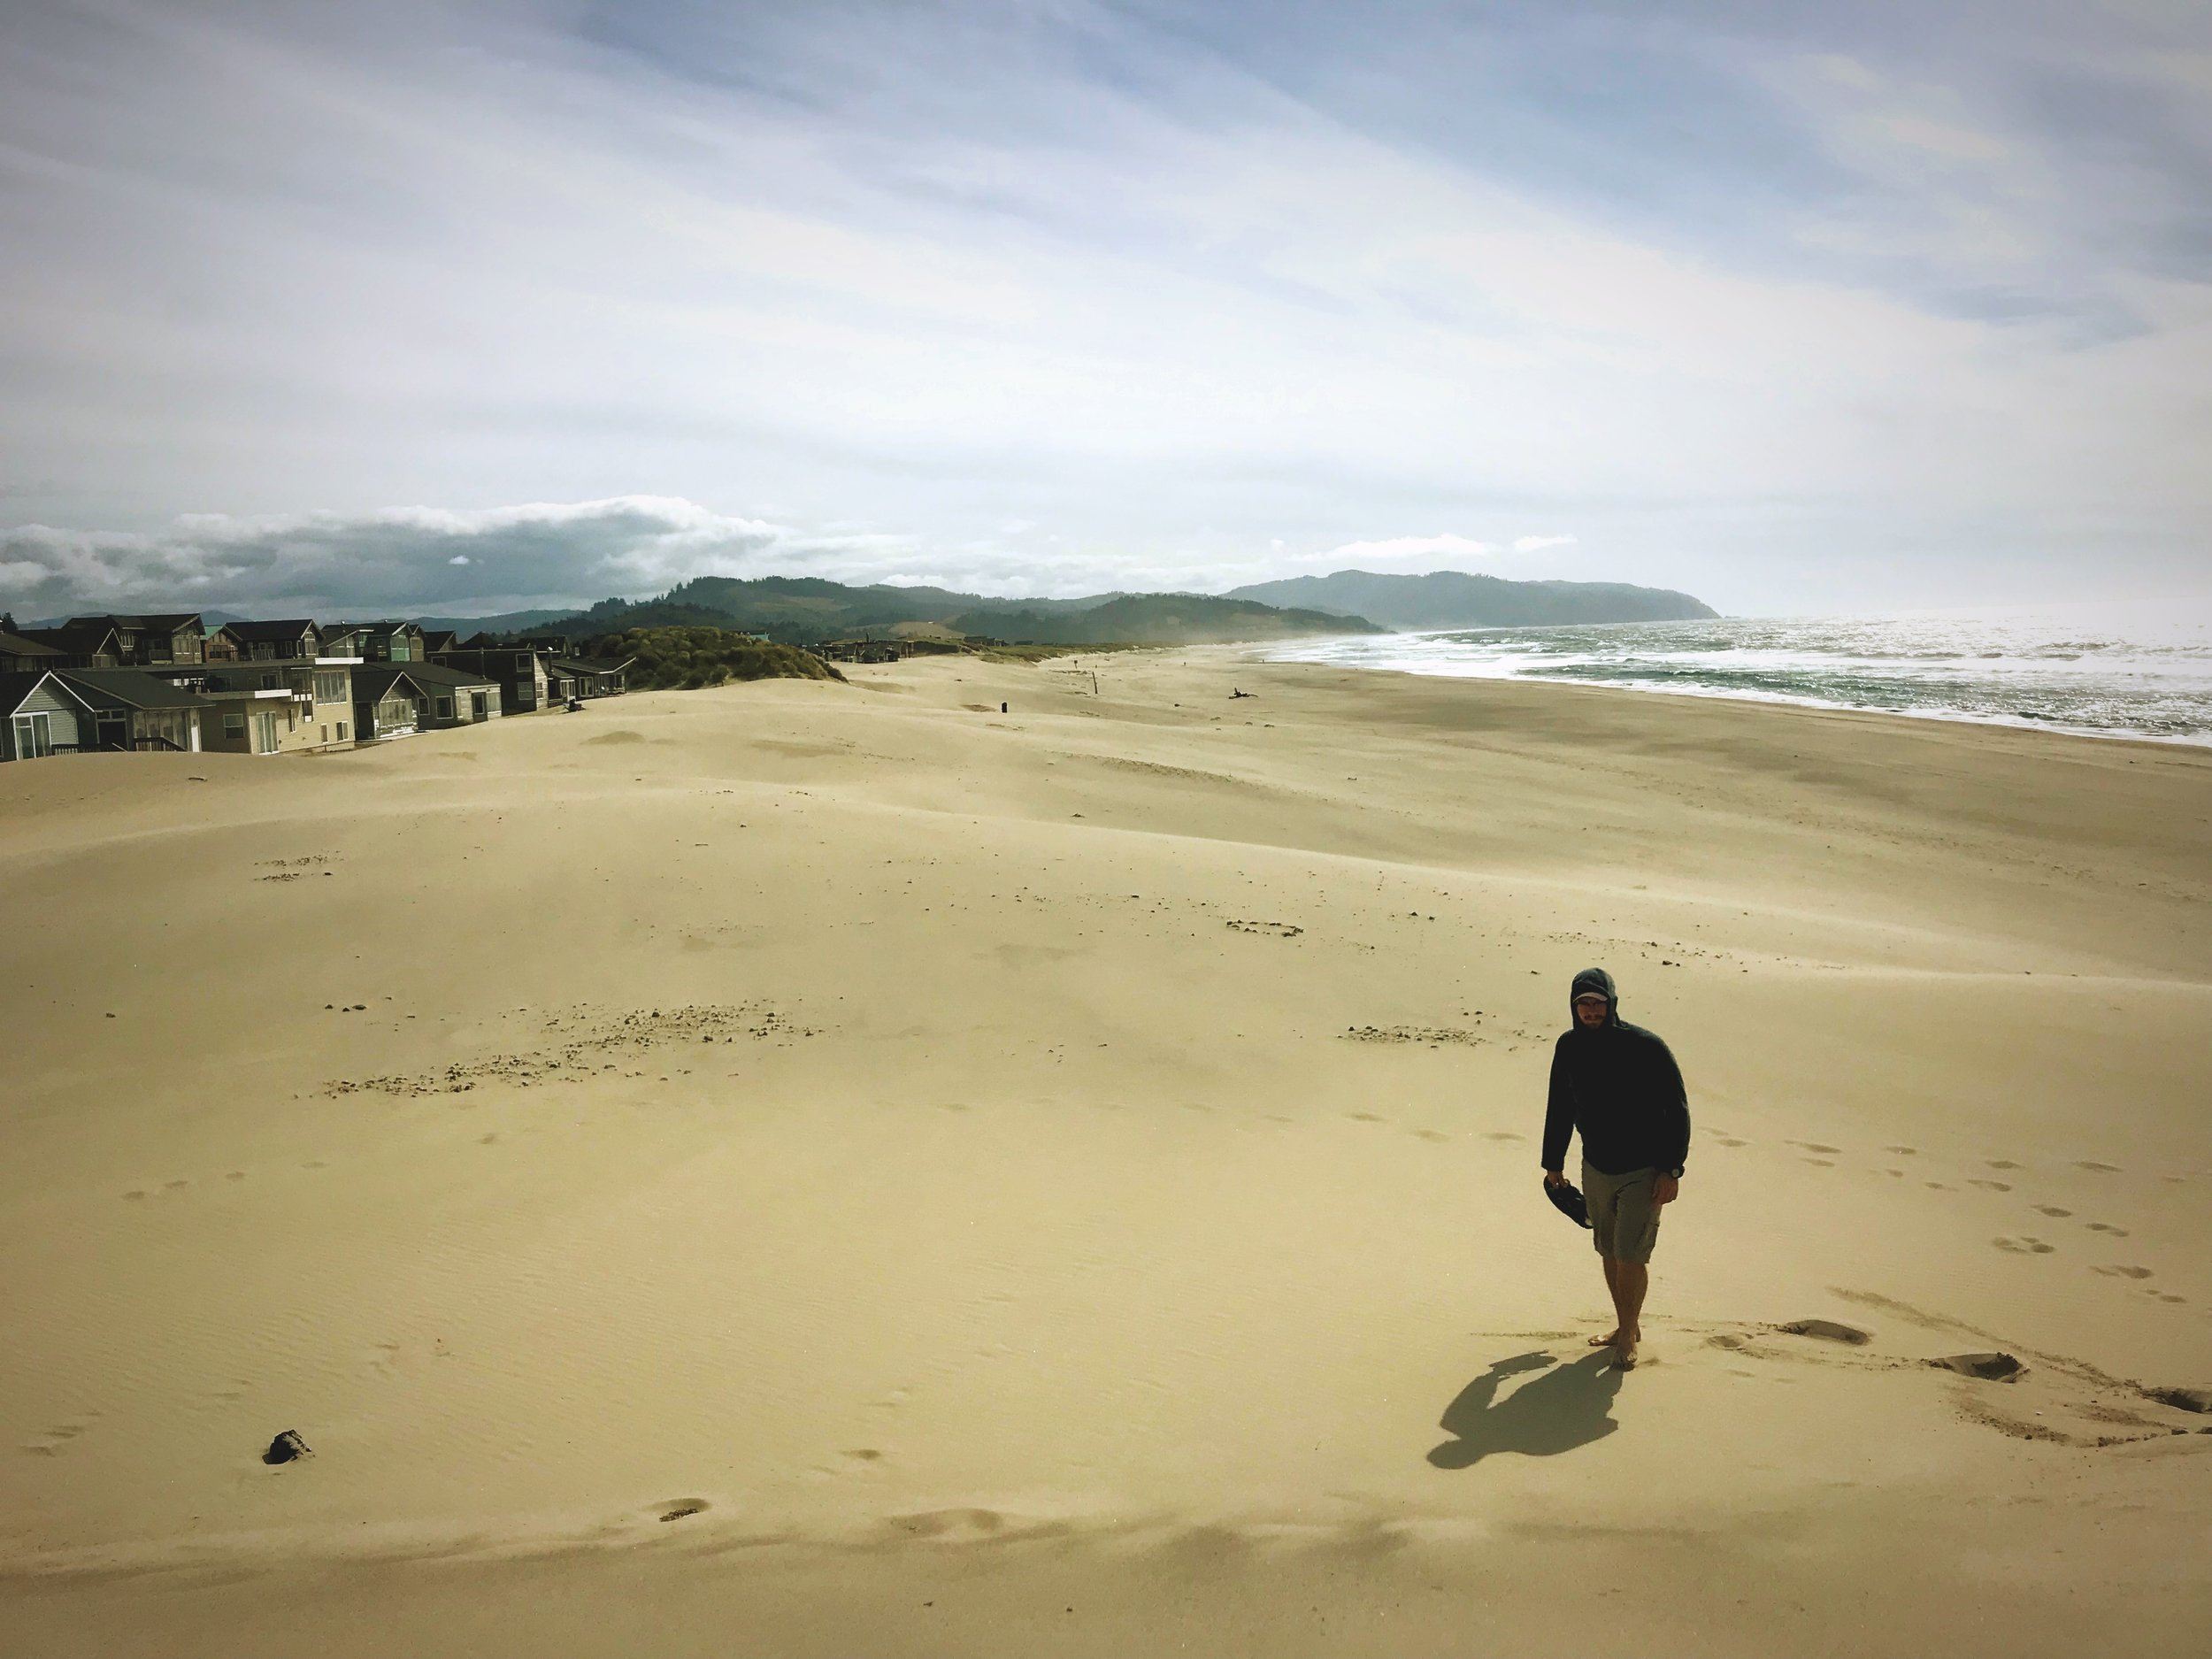 The sandy beach at Cape Kiwanda stretches on a long ways. The entire Oregon Coast is public land, so you can stroll as far as you want.